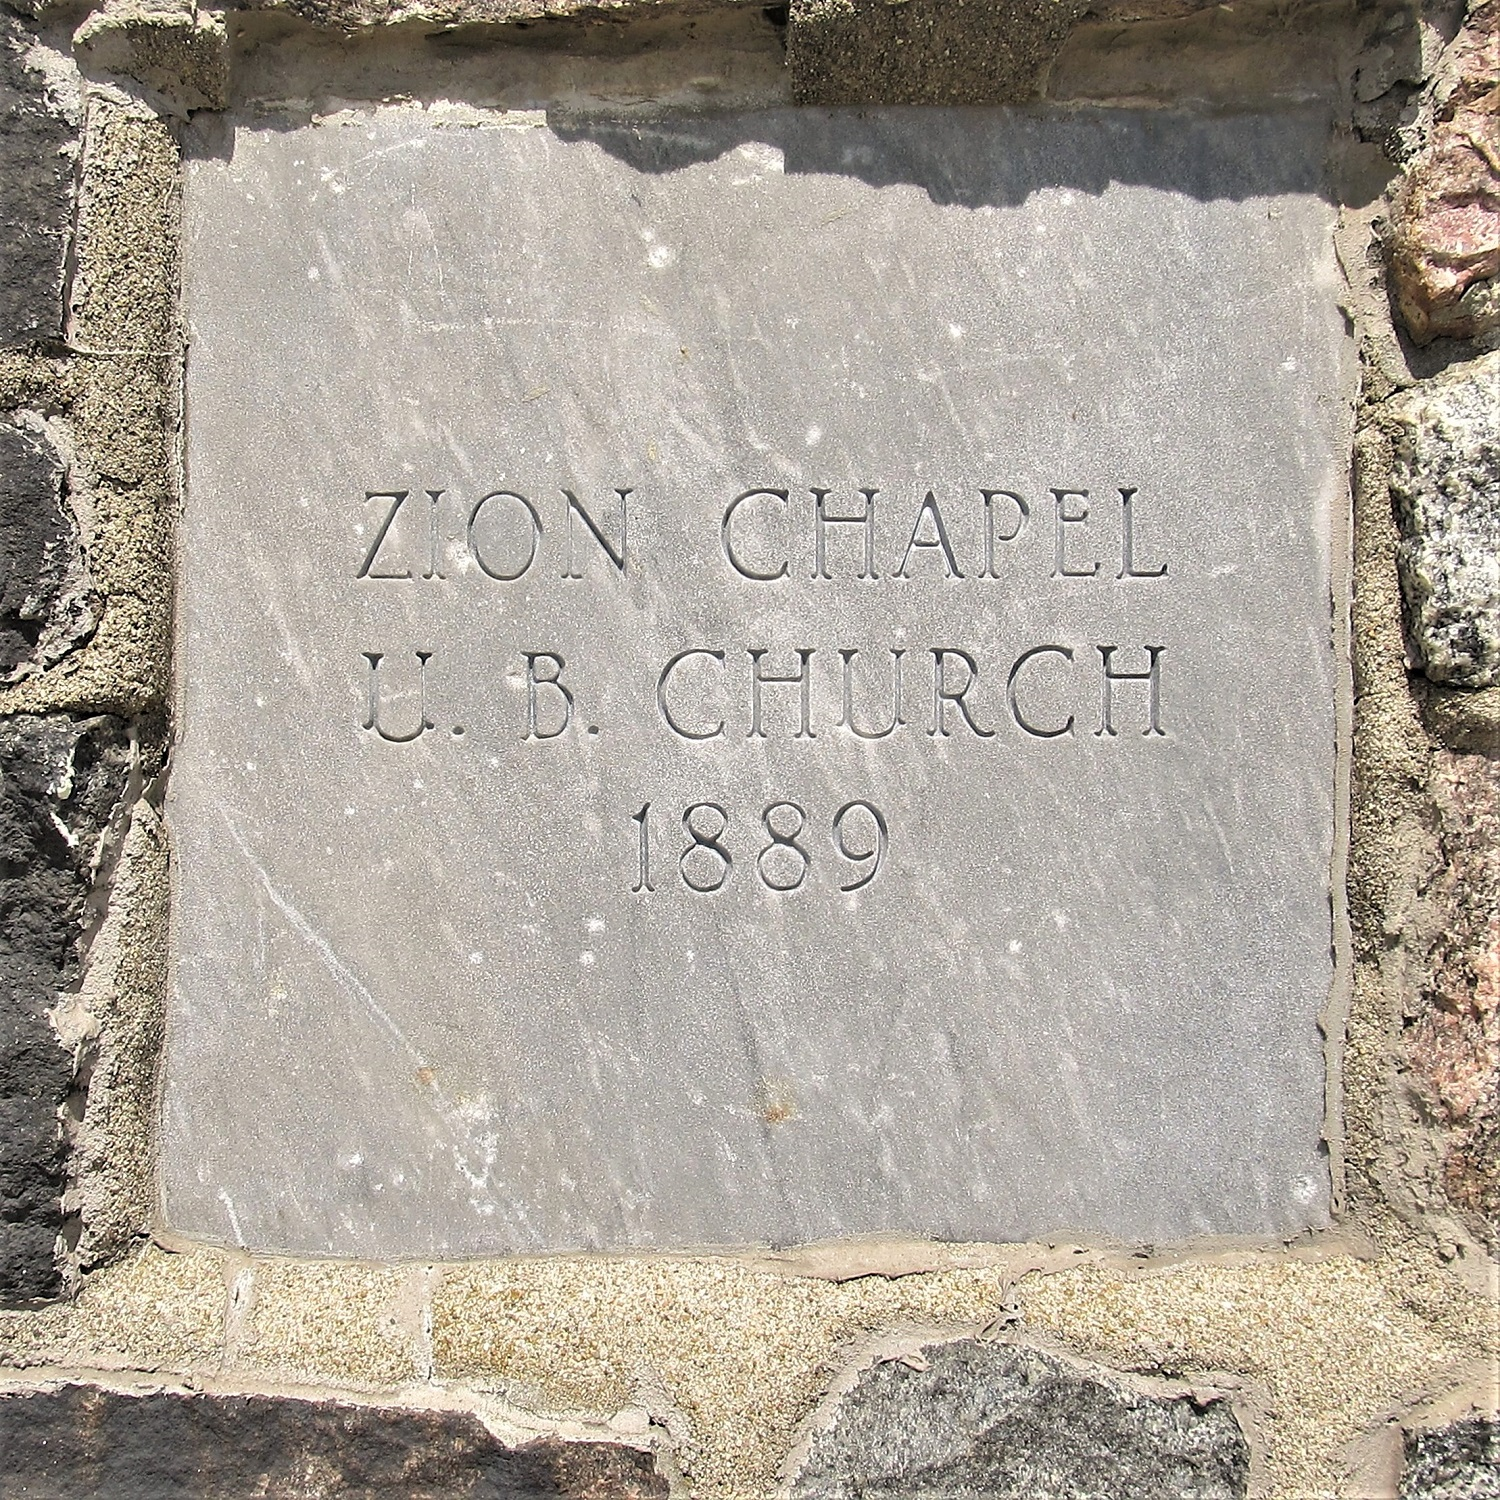 The original cornerstone of the building